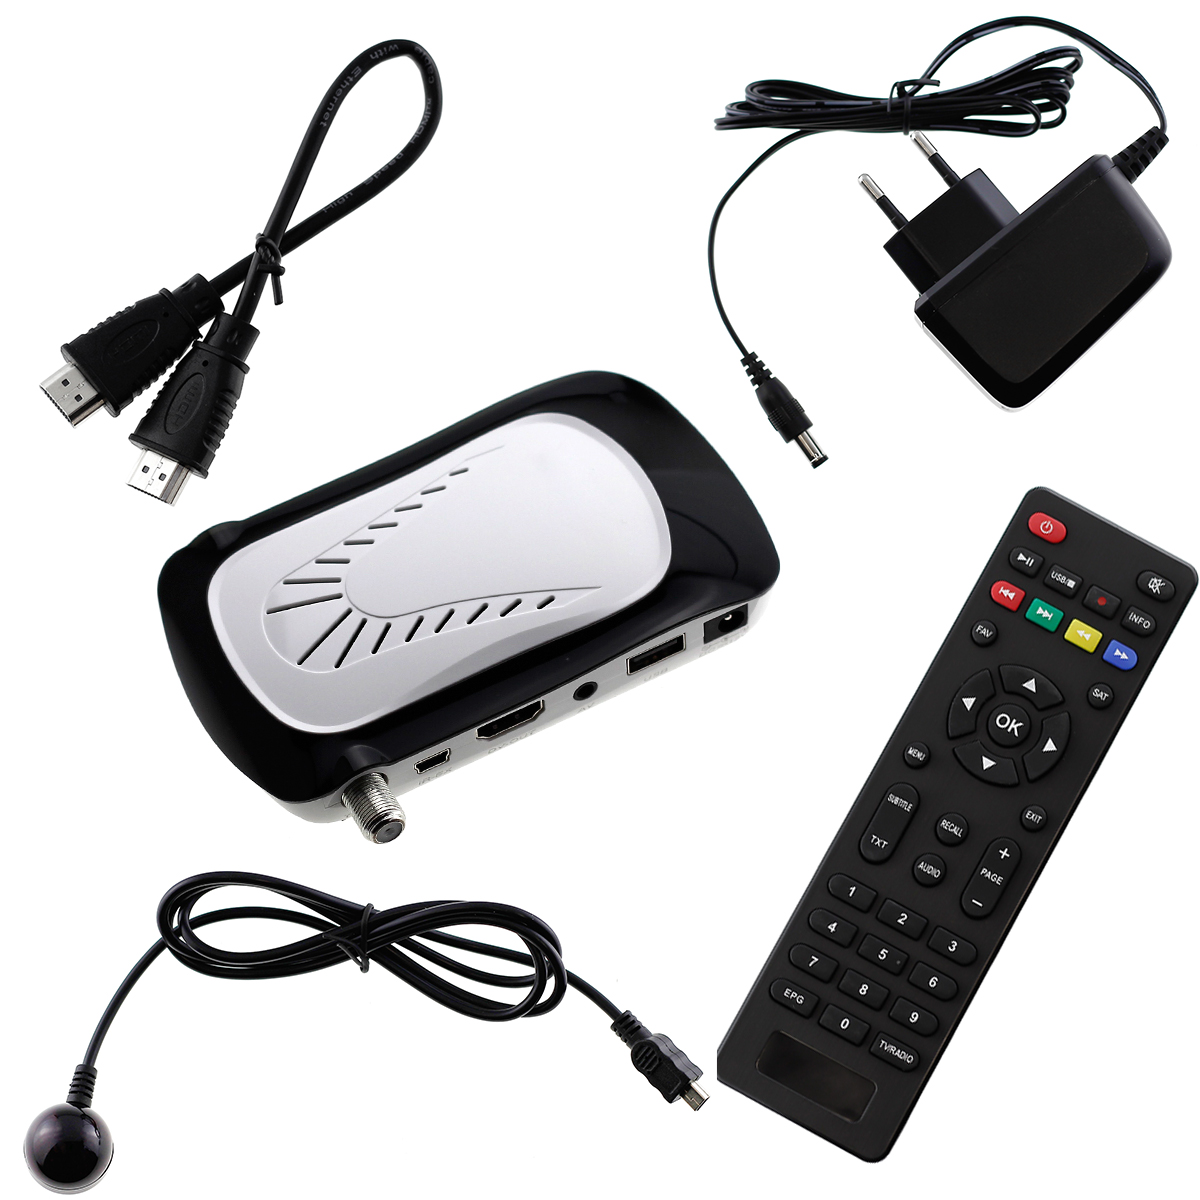 full hd digital sat receiver hdmi kabel dvb s dvb s2 usb 1080p tv mount weiss ebay. Black Bedroom Furniture Sets. Home Design Ideas